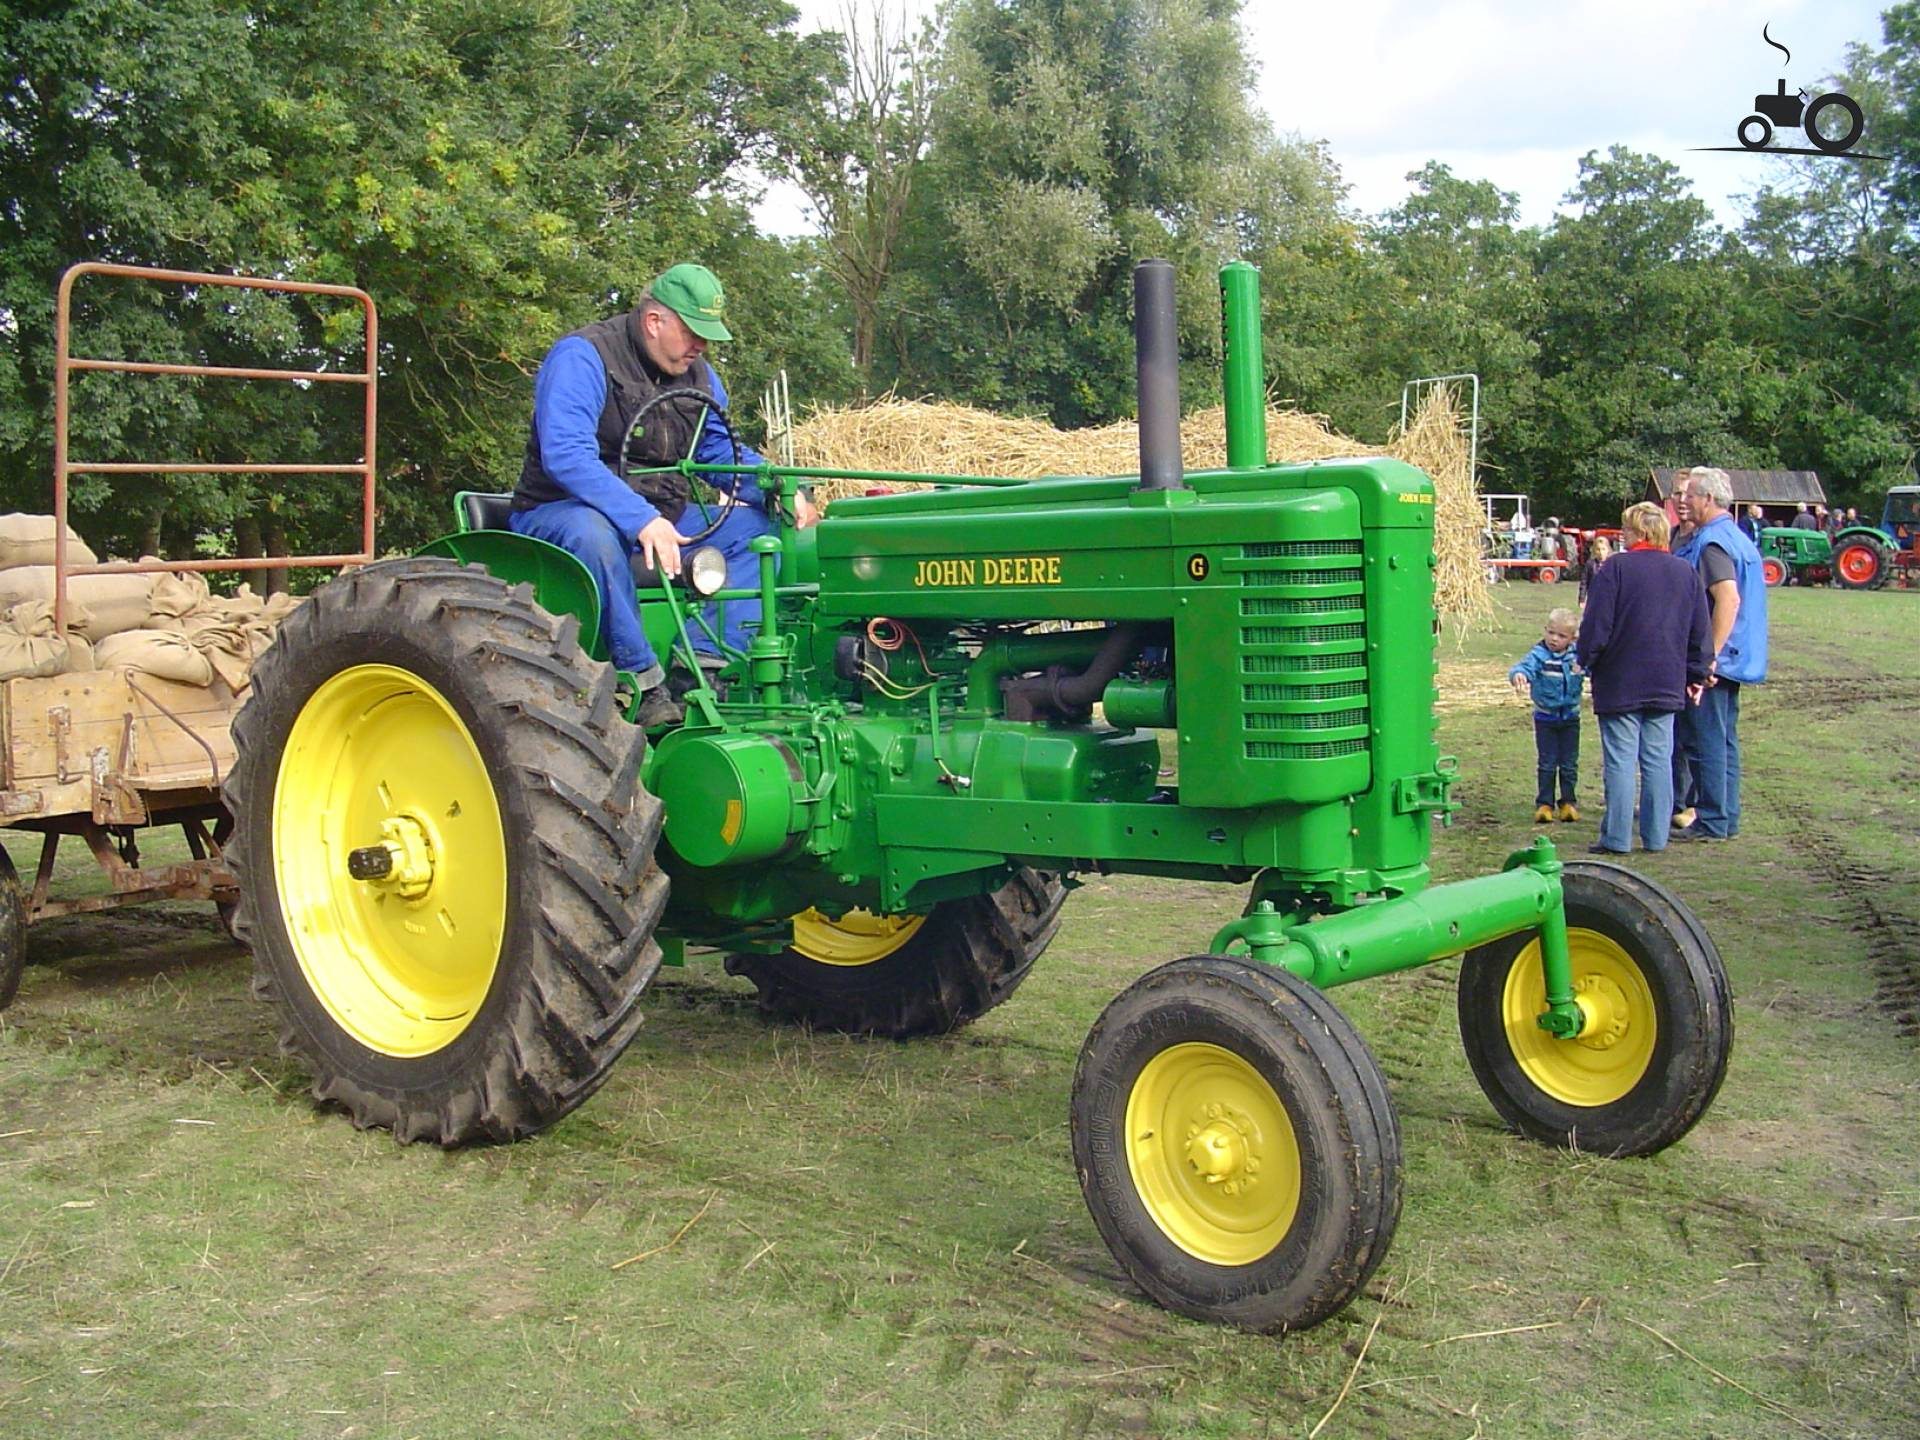 John Deere G Specs and data - Everything about the John ...